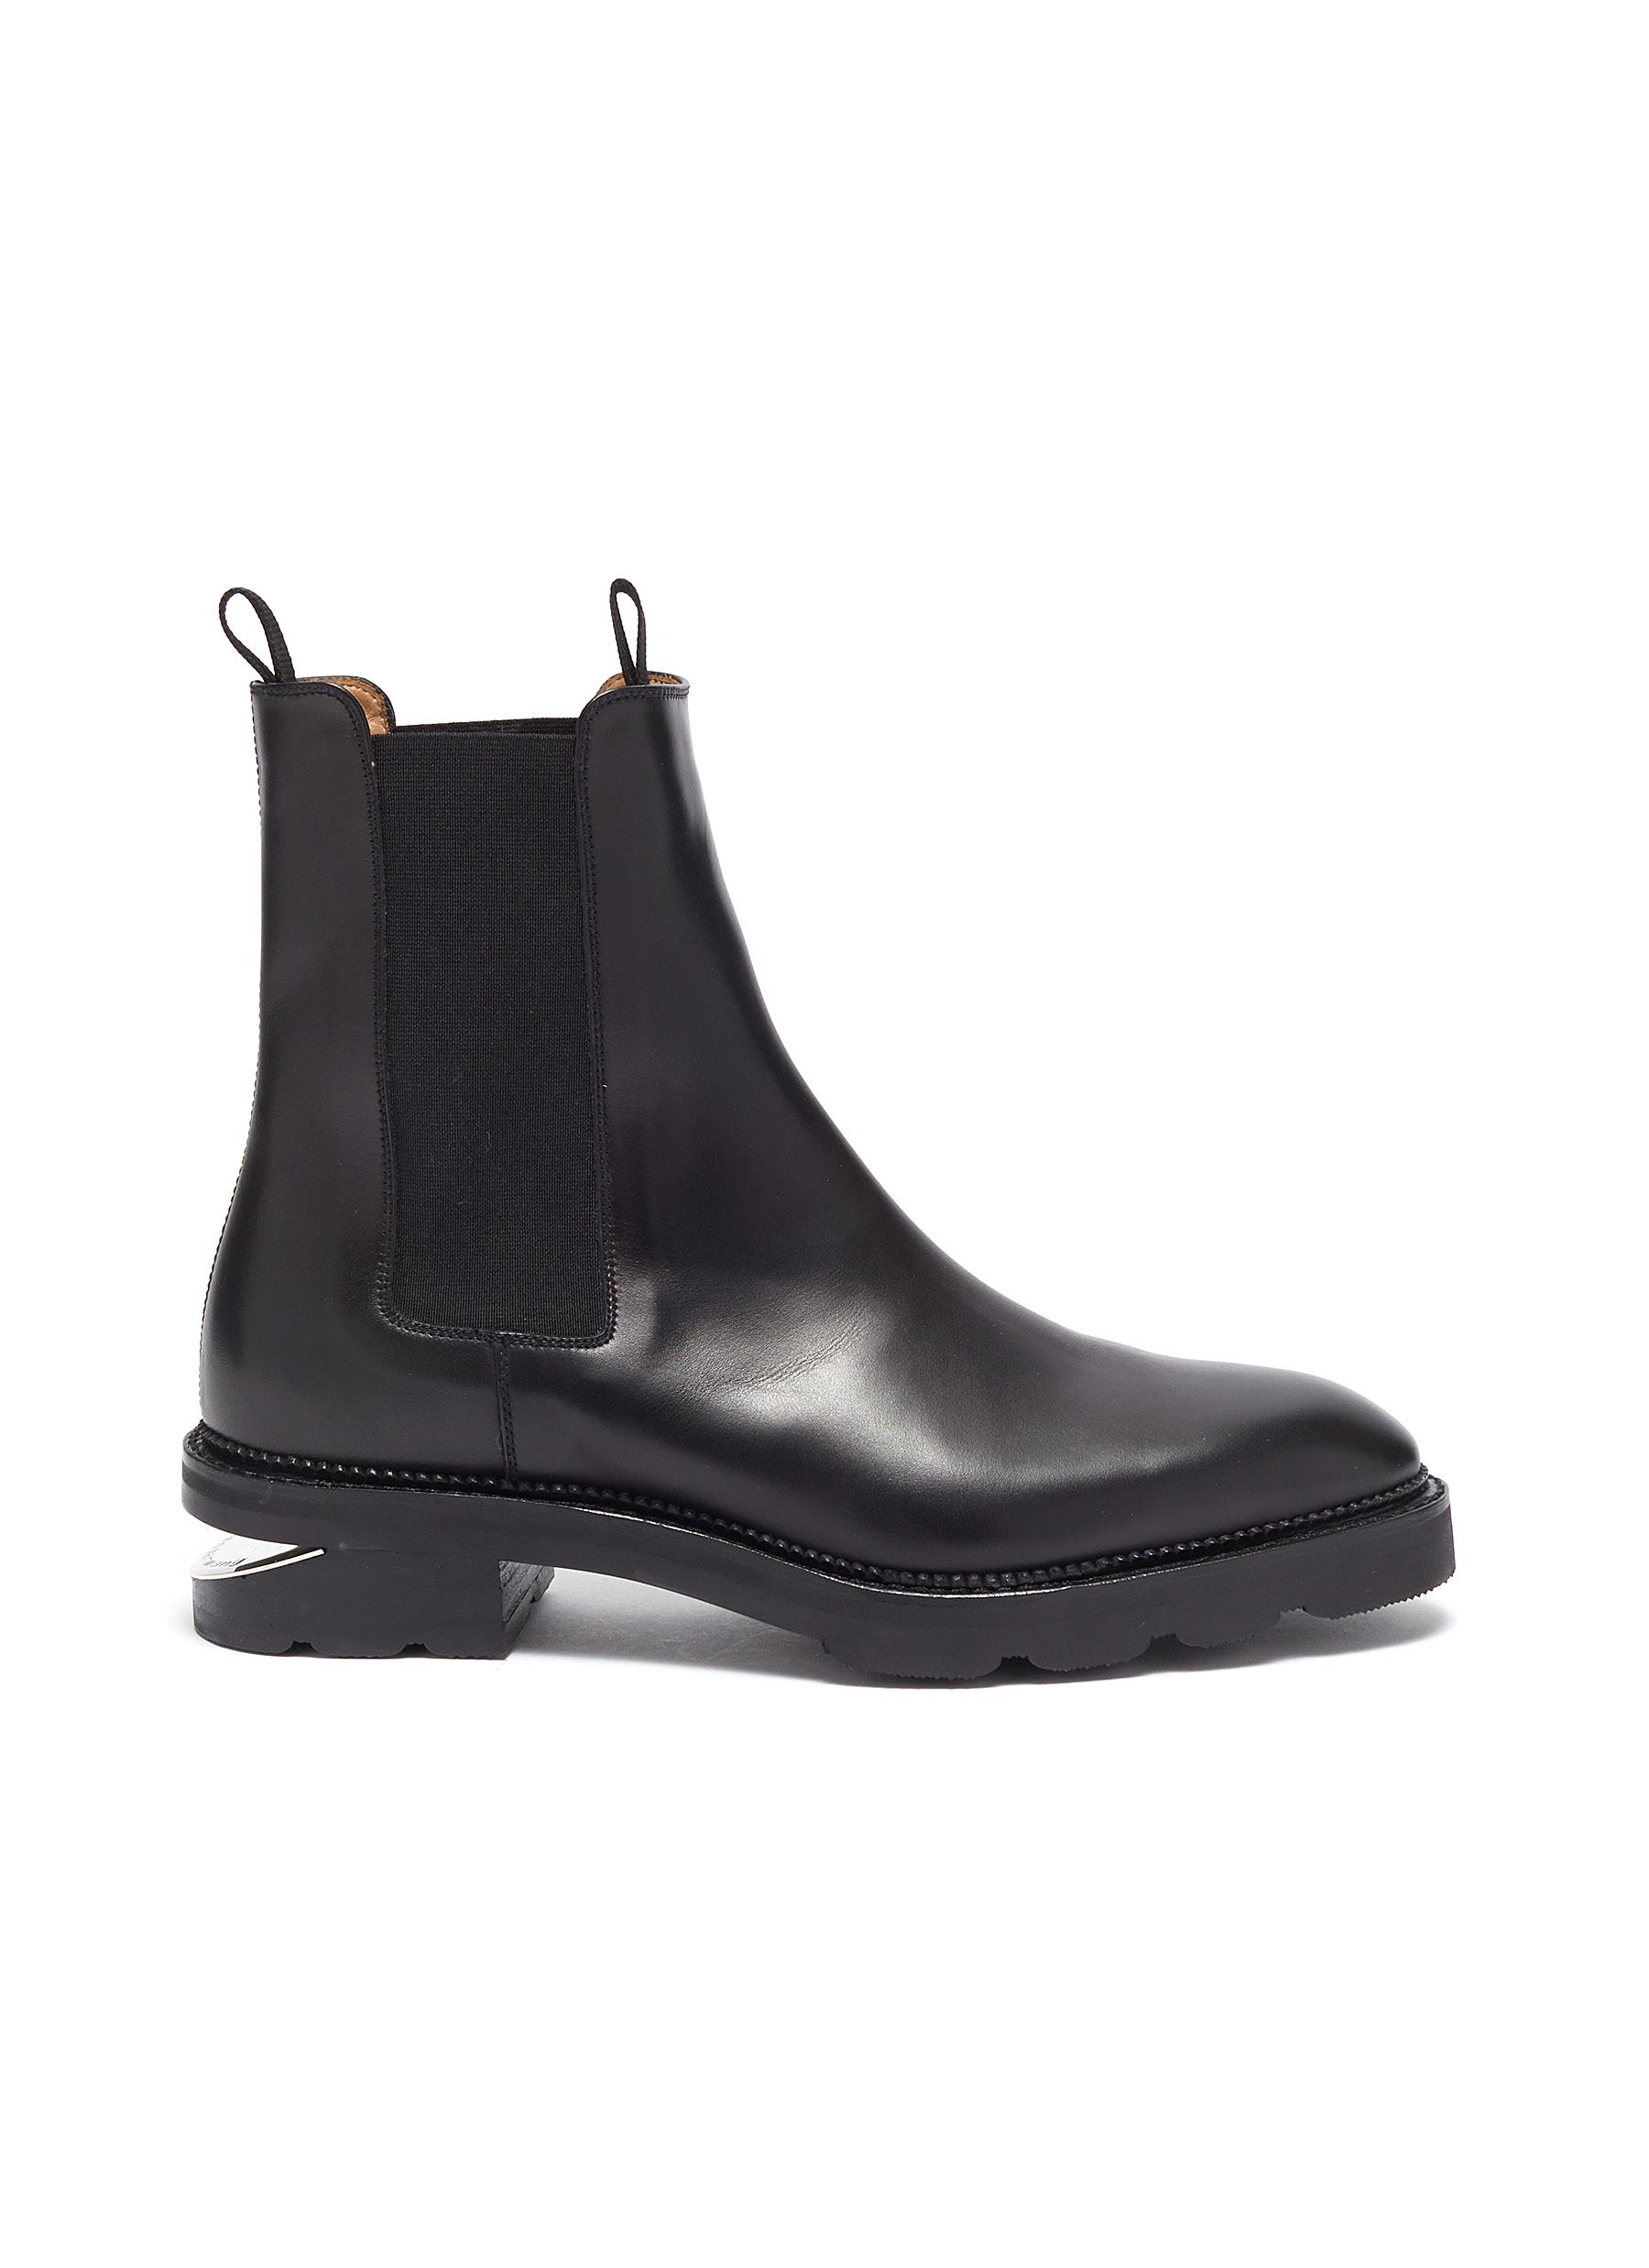 Andy cutout heel leather Chelsea boots by Alexanderwang